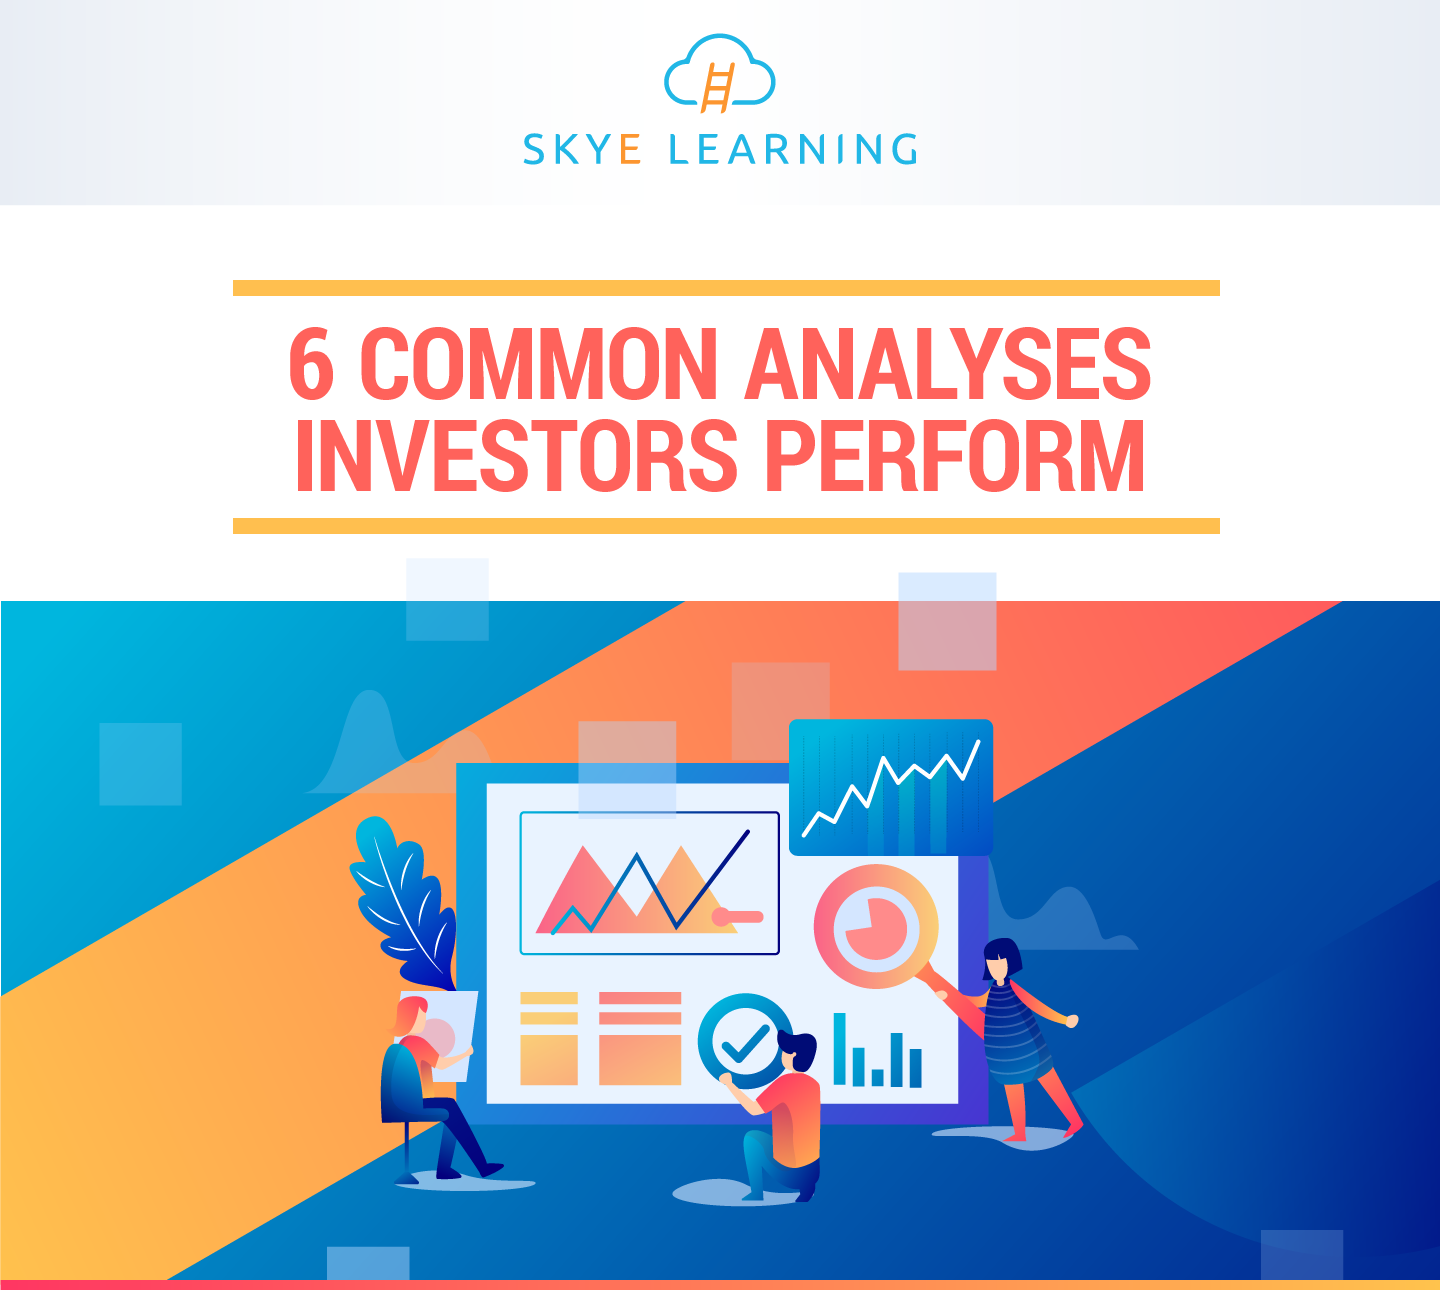 6-Common-Analyses-Investors-Perform-SL-IG-TRUNCATED